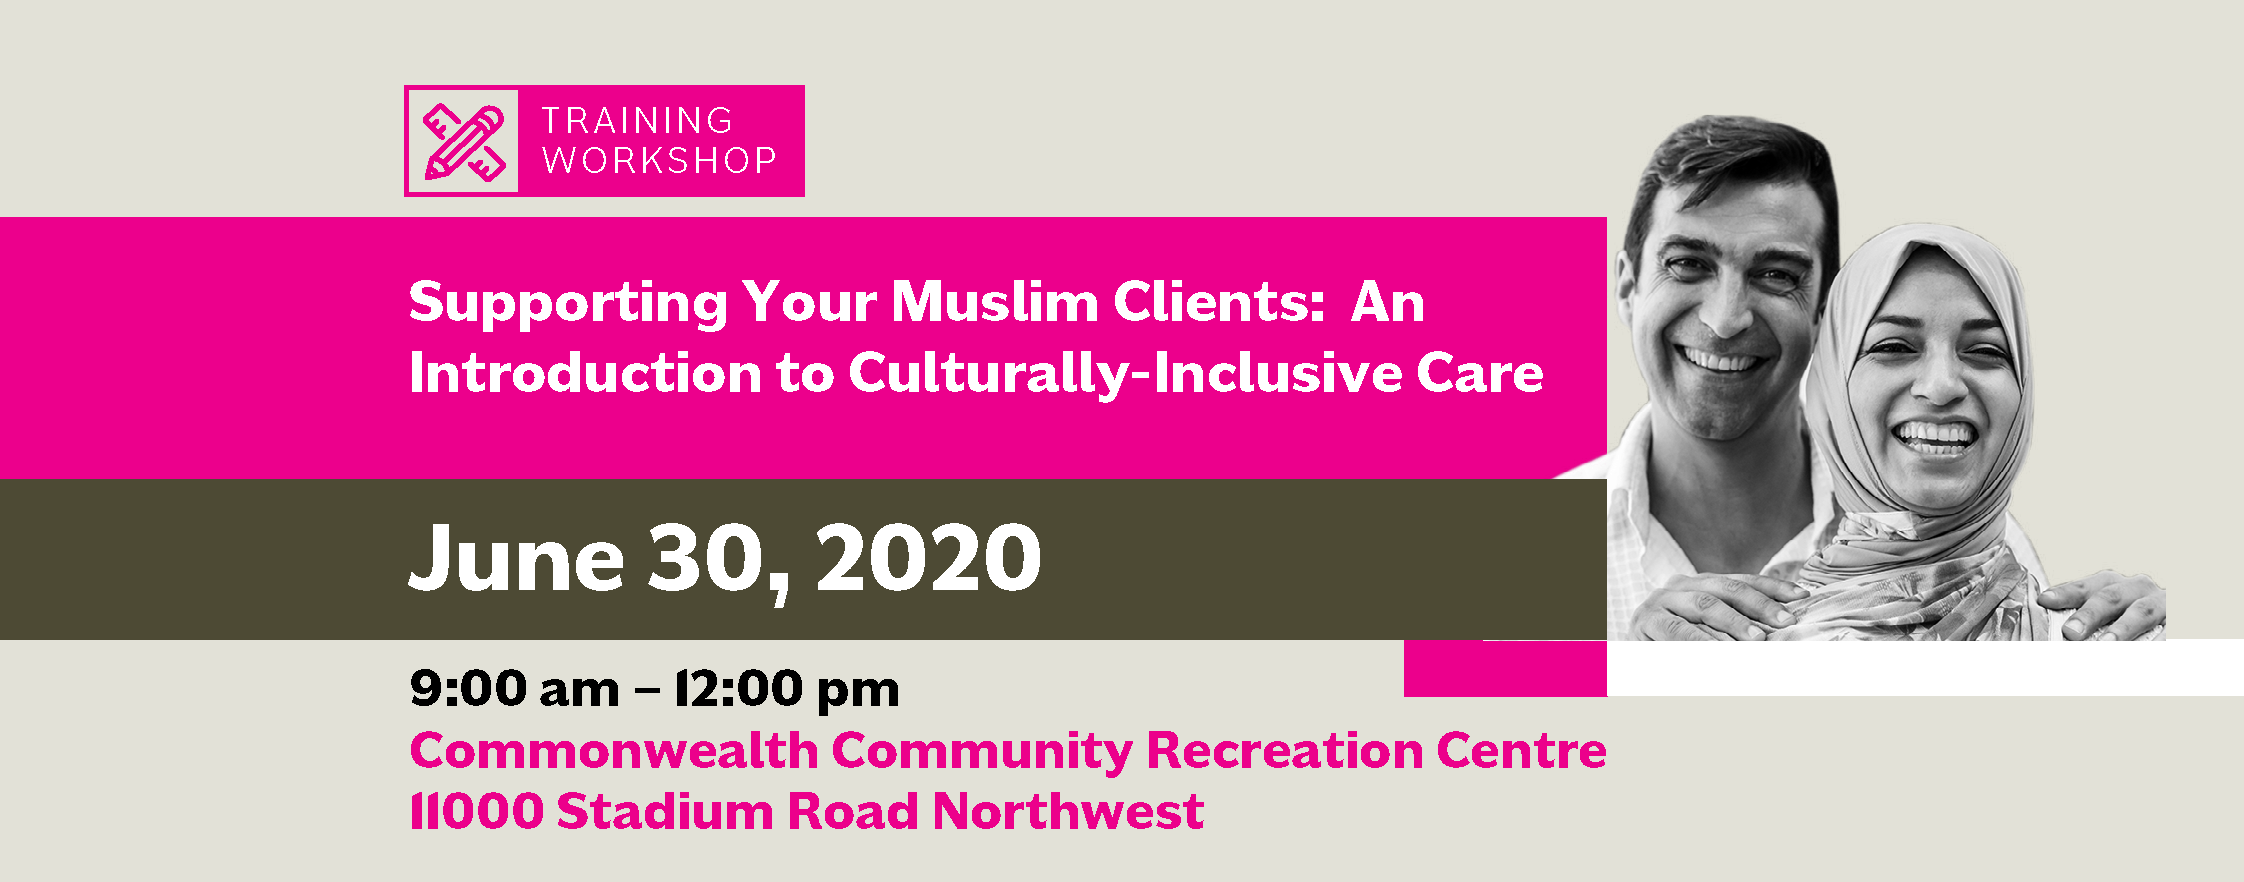 06-30_Supporting Your Muslim Clients